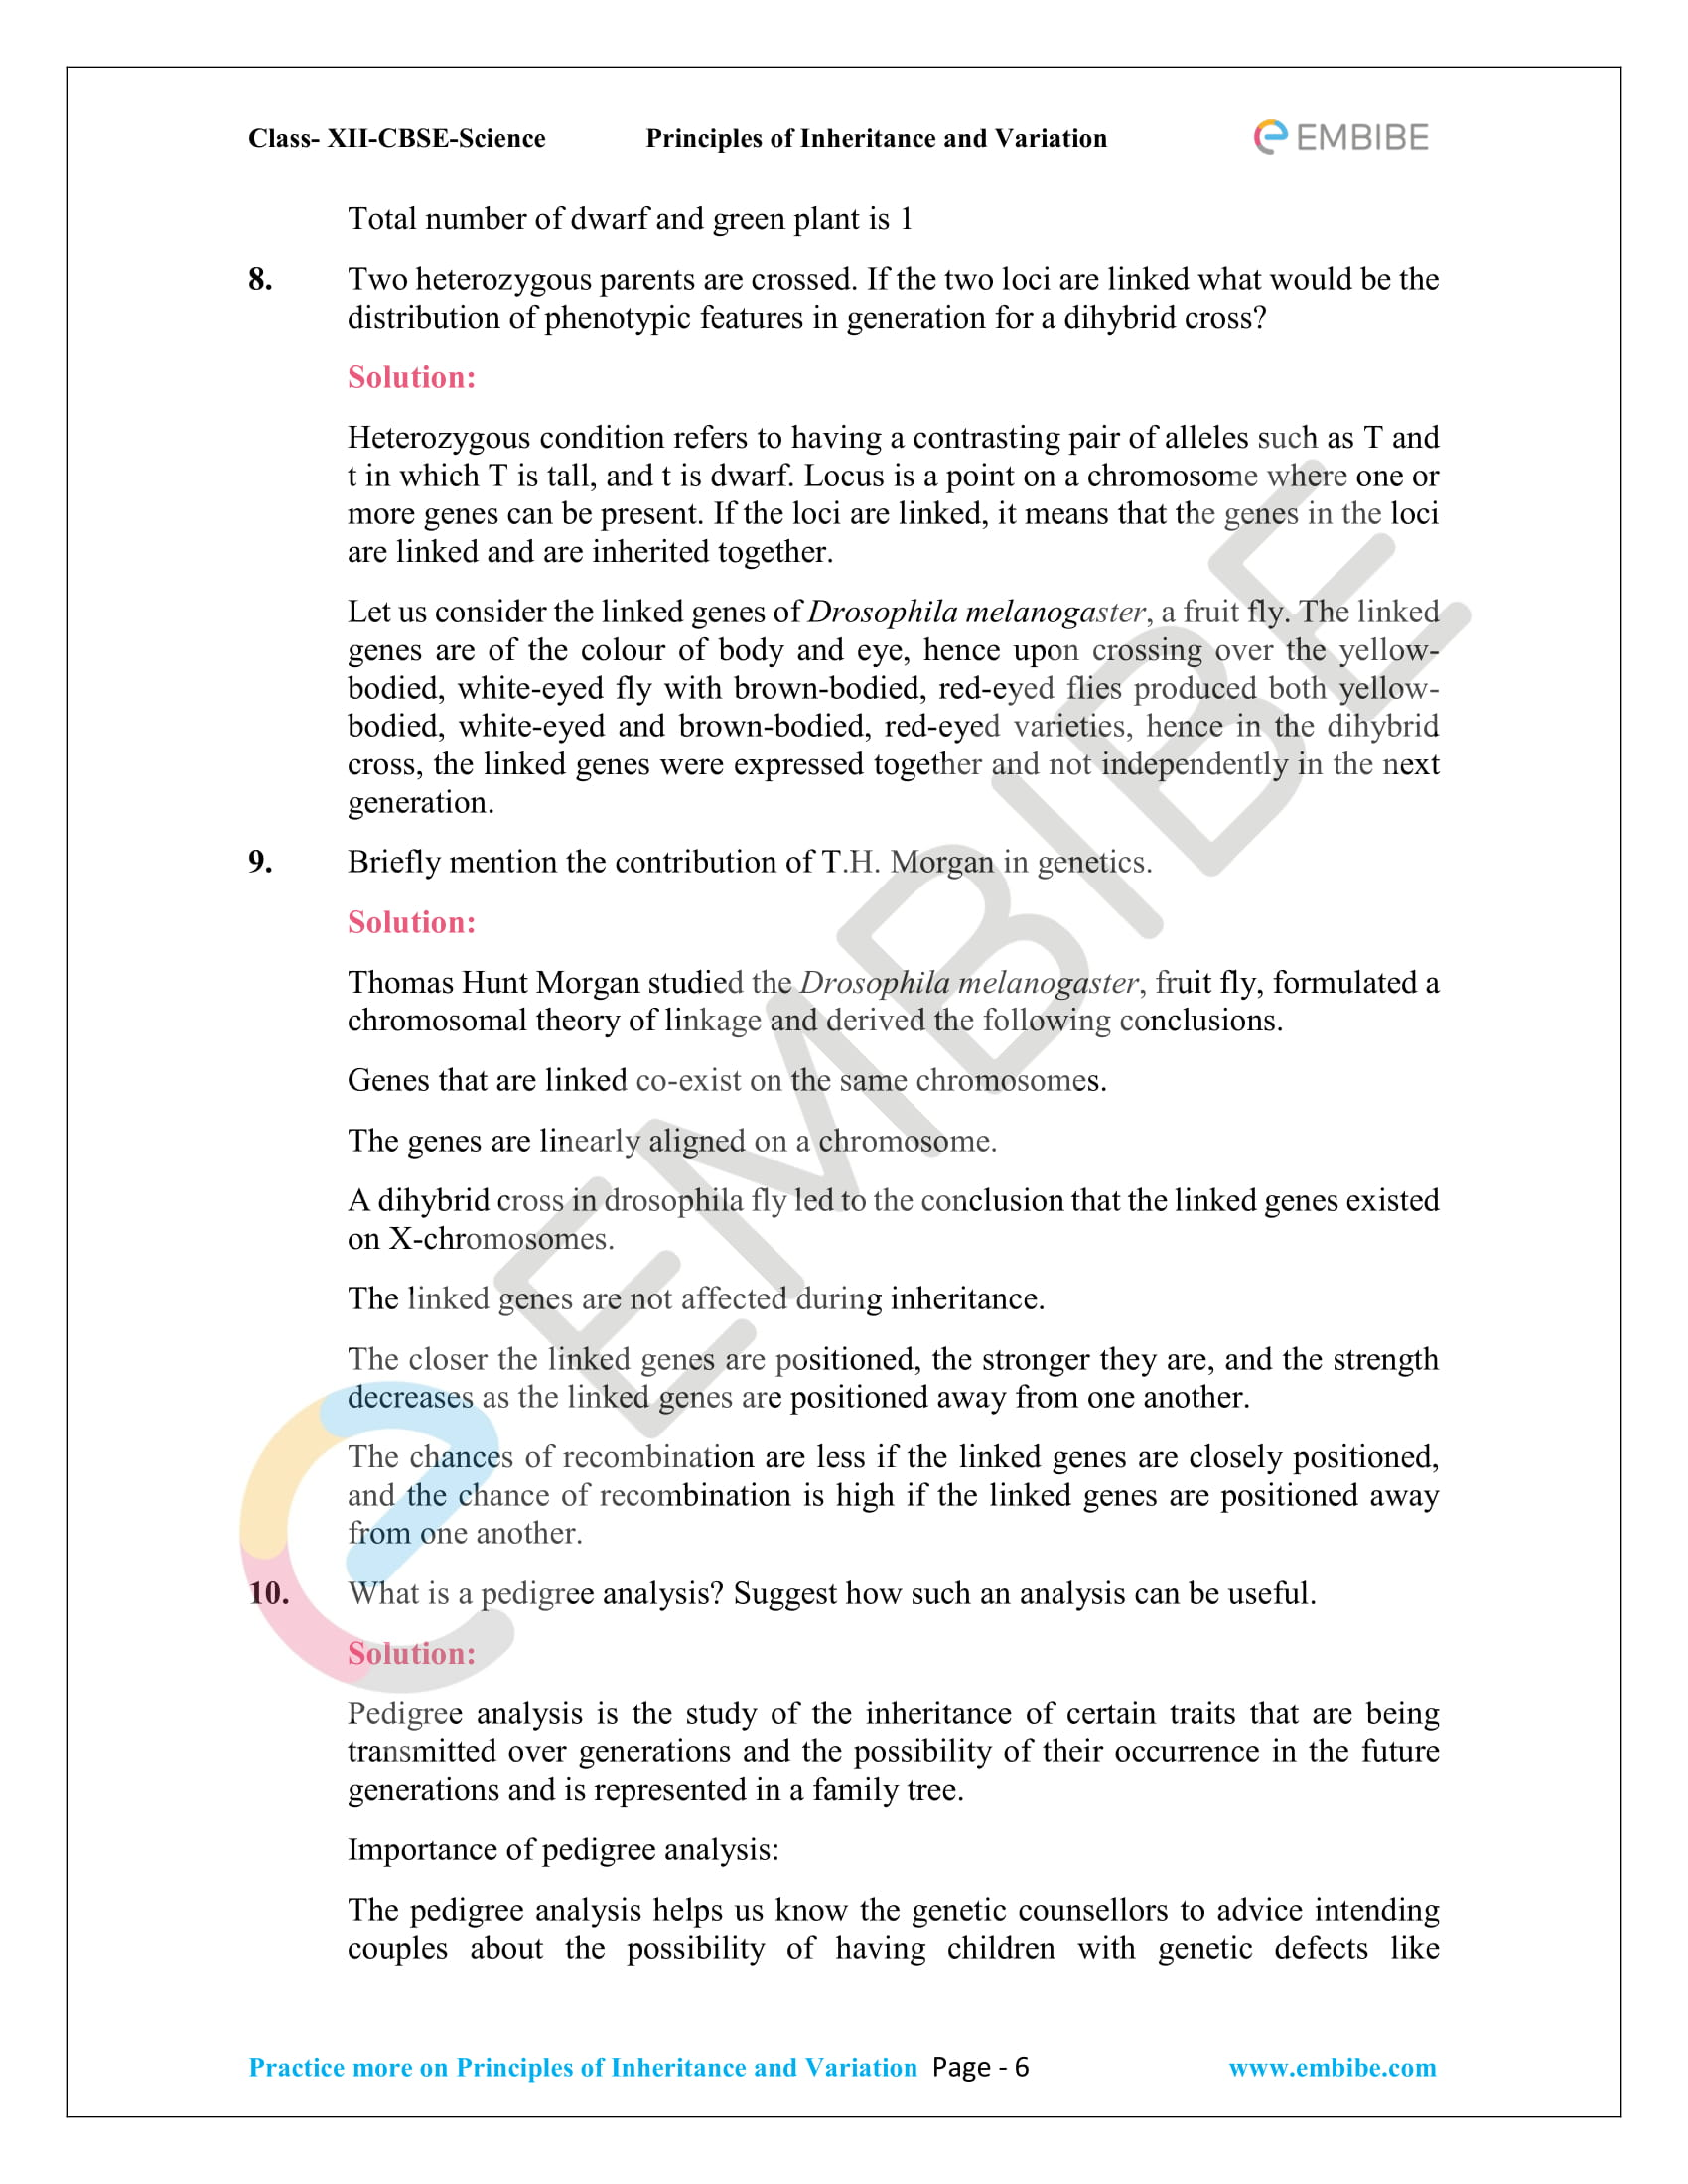 NCERT Solutions for Class 12 Biology Chapter 5: Principles Of Inheritance And Variation - 6